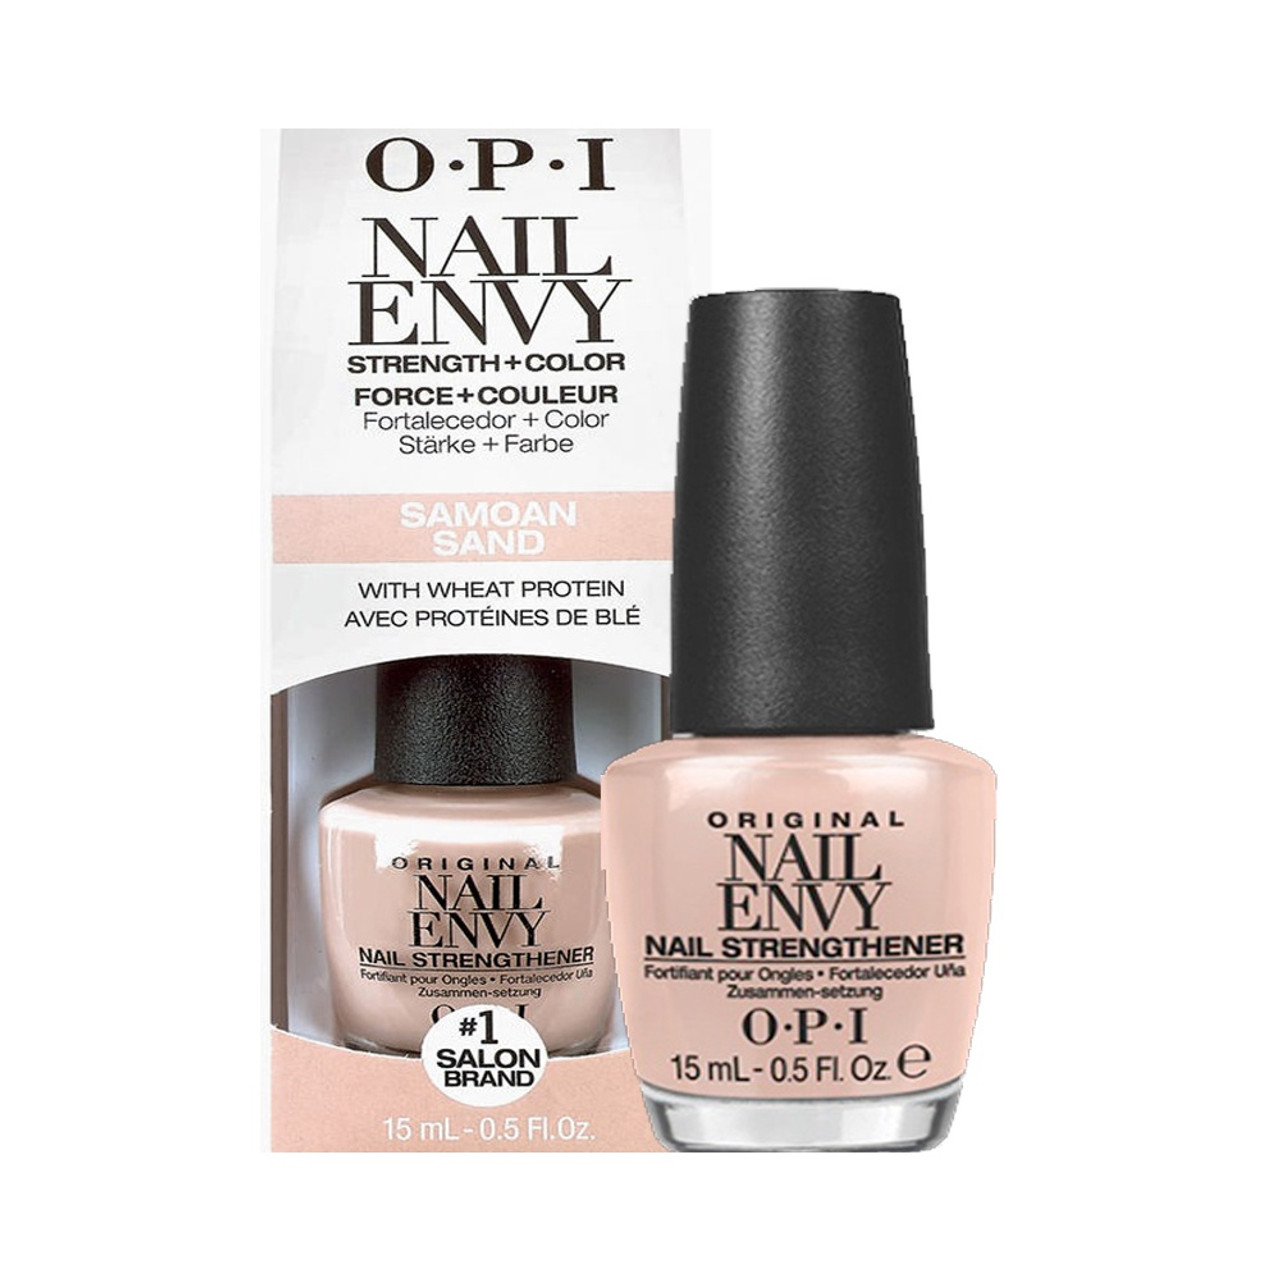 OPI NAIL ENVY | NAIL STRENGTHENER COLOR | SAMOAN SAND .5 OUNCE - MAX ...